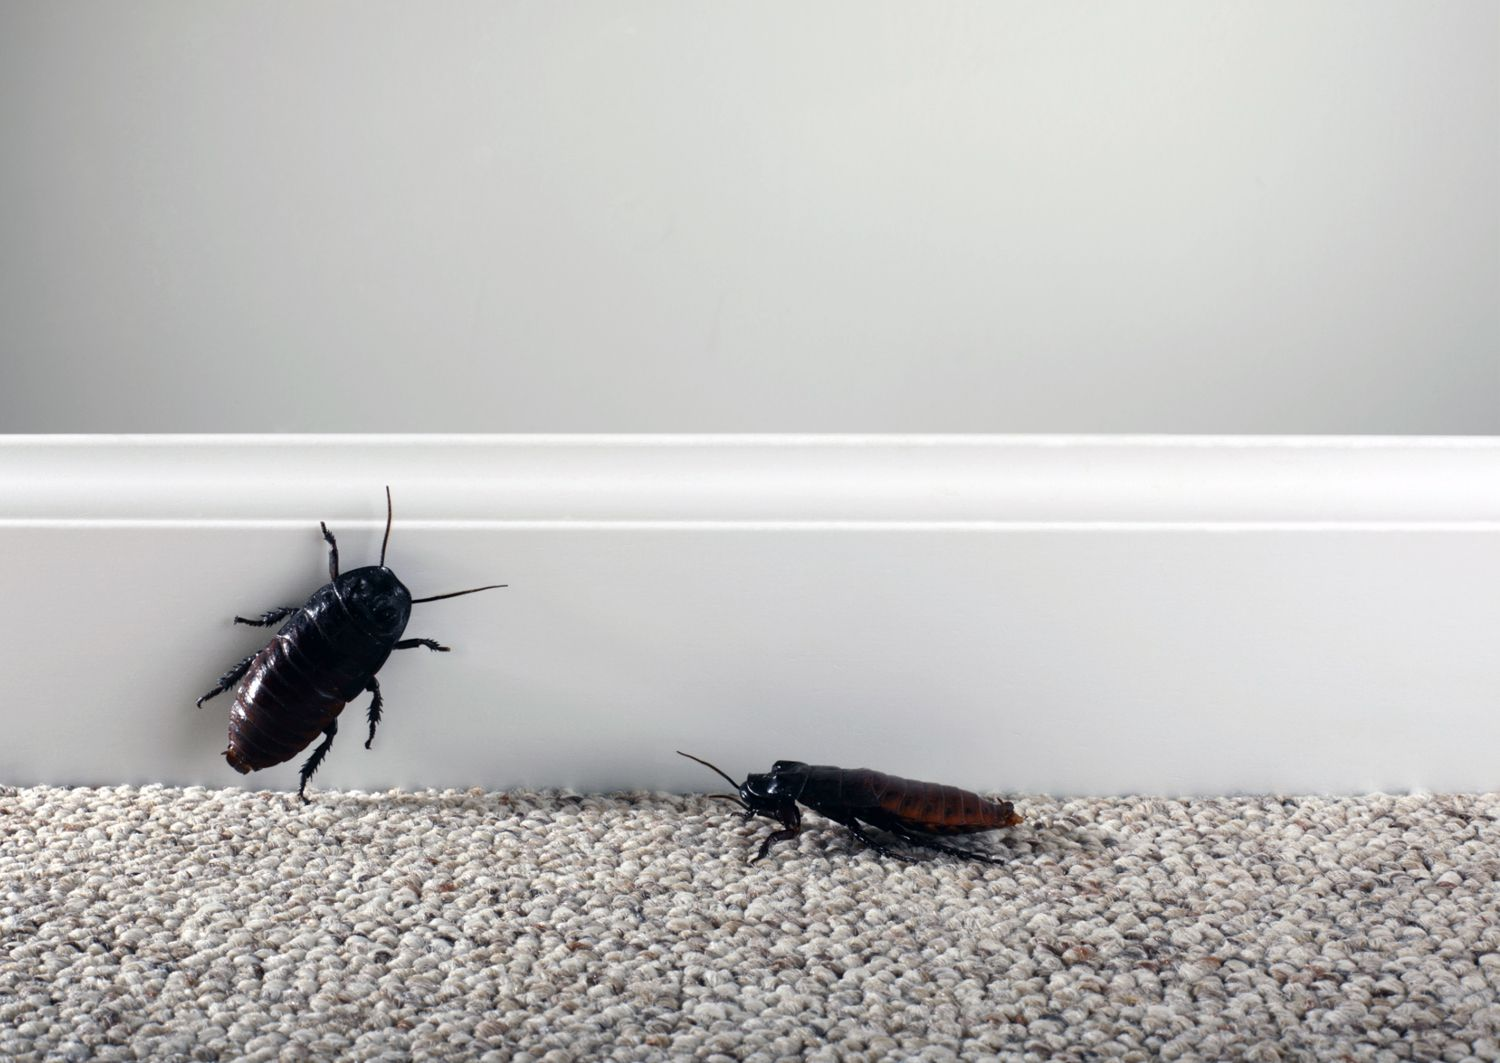 How to Move Without Taking the Bugs and Roaches With You. How to Control and Identify Bugs that Eat Clothes